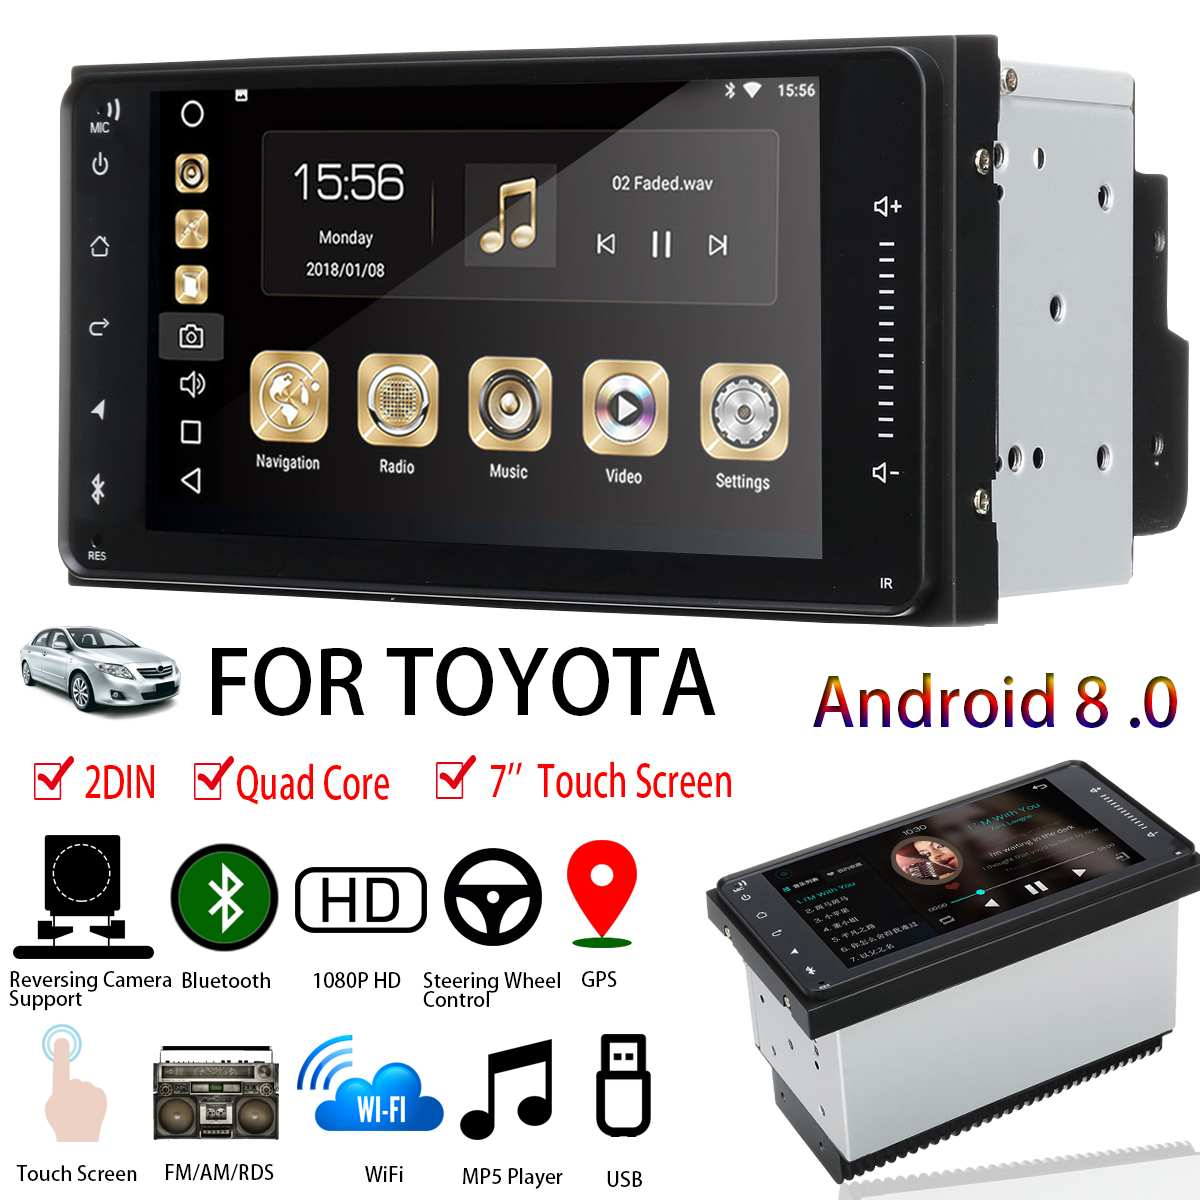 7'' for Android 8 Car Stereo for Toyota 2DIN Blutooth WIFI GPS Nav Quad Core Radio Video MP5 Player Car Multimedia Player